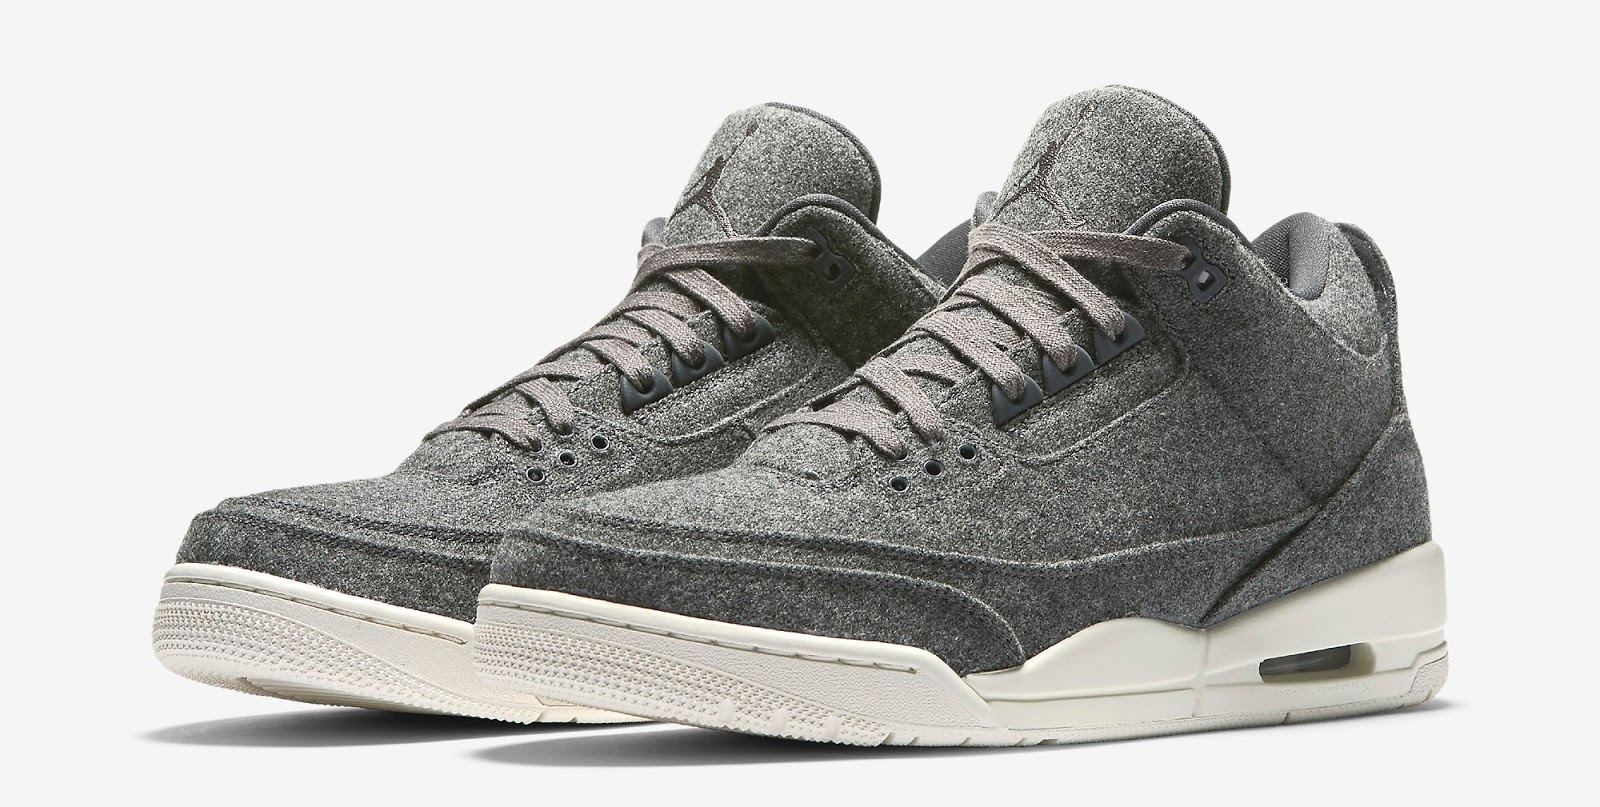 The Air Jordan 3 Retro is the latest to get an all-over